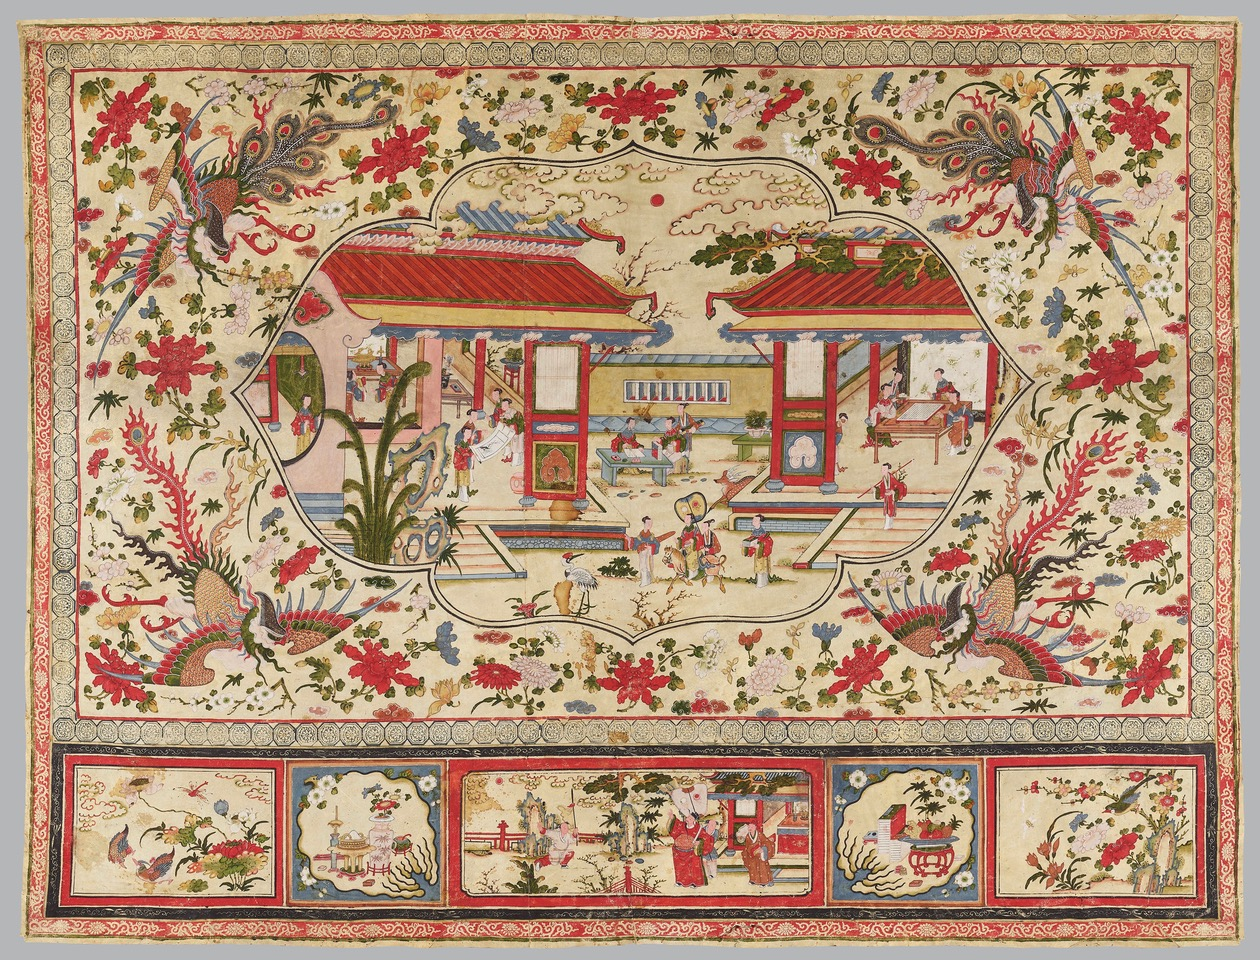 A rare painting on doeskin, the central cartouche with ladies at scholarly pursuits, flanked by four feng huang and a variety of flowers. Chinese, 18th/19th century